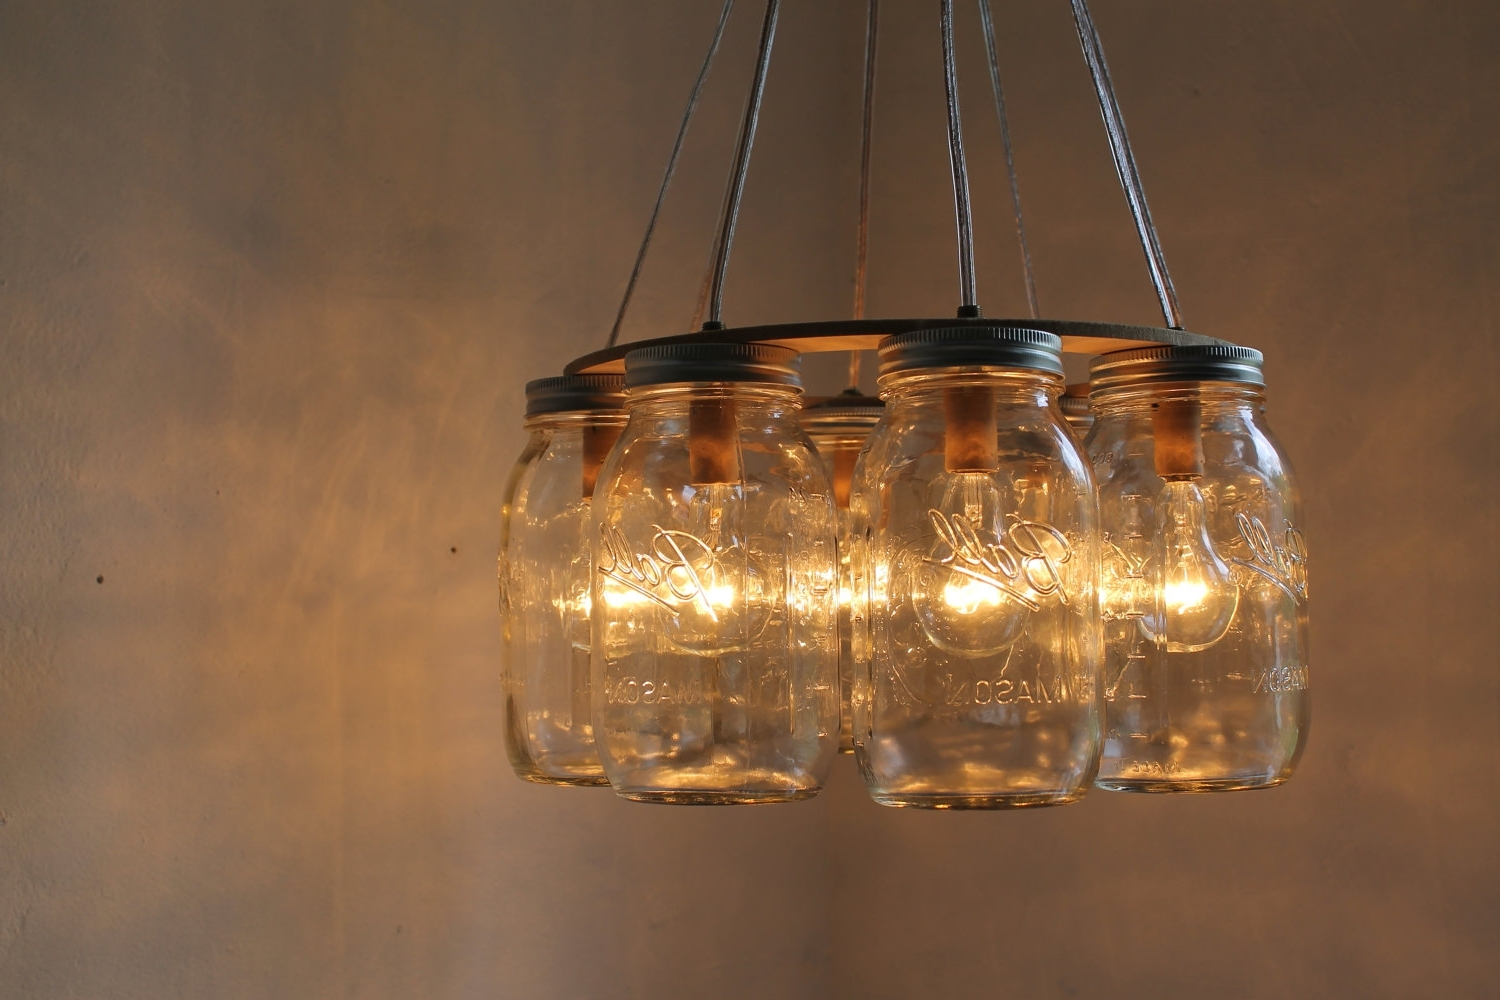 Most Current Small Rustic Lighting Fixtures : Rustic Lighting Fixtures Ideas Pertaining To Small Rustic Chandeliers (View 3 of 15)